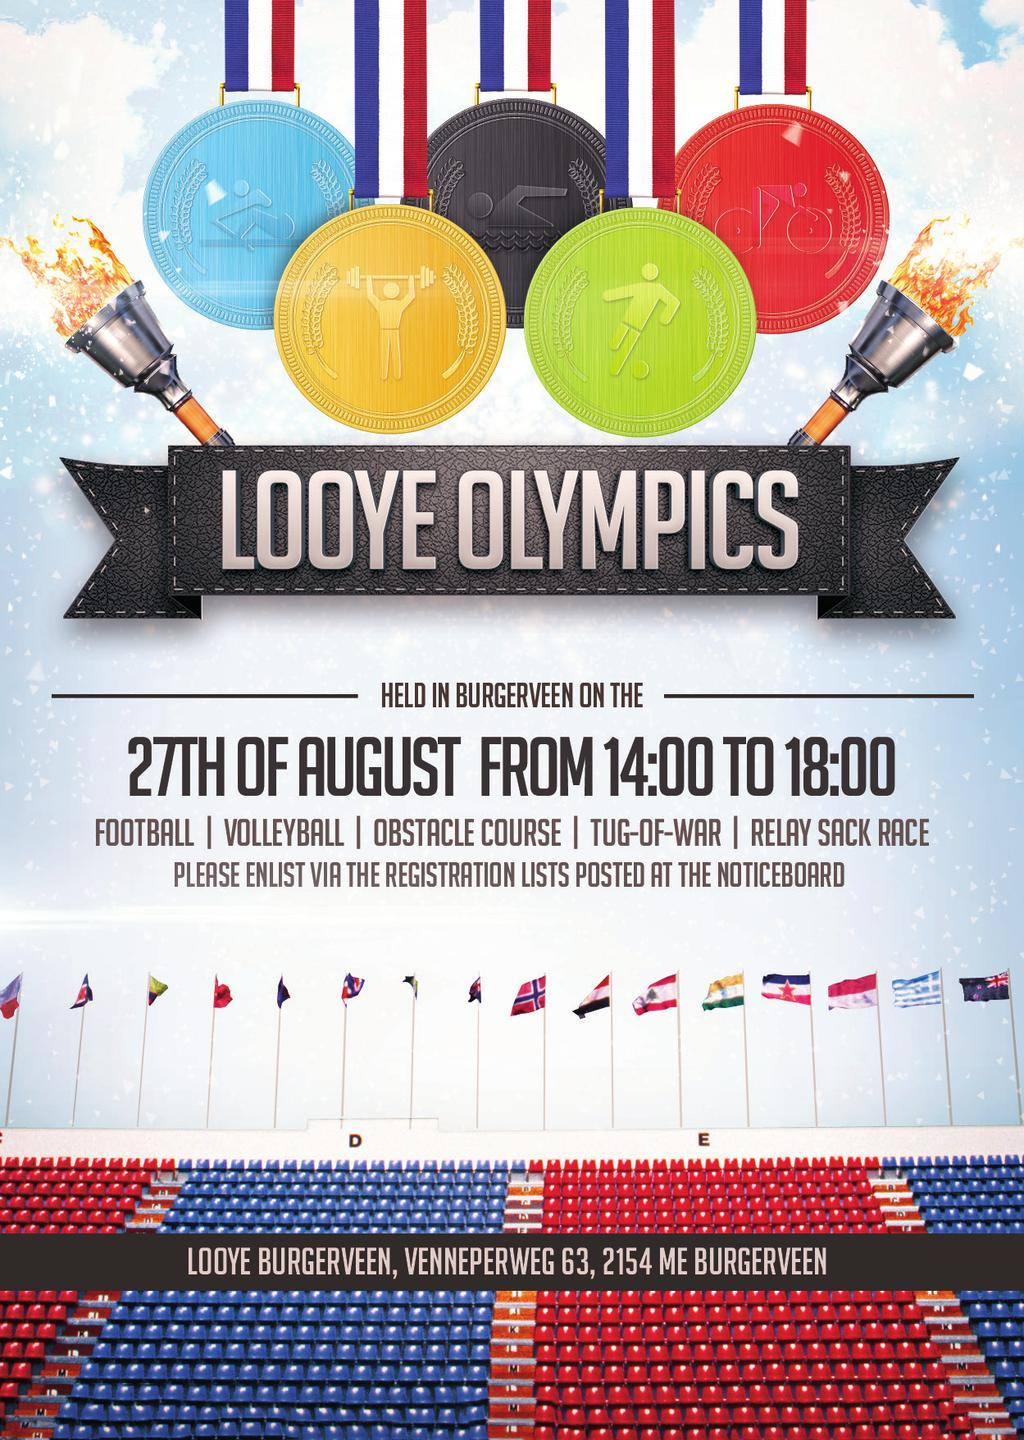 BUS TRANSPORT TO THE LOOYE OLYMPICS The following bus routes are available for the transport to the Looye Olympics: BUS A Time Location Address 11.